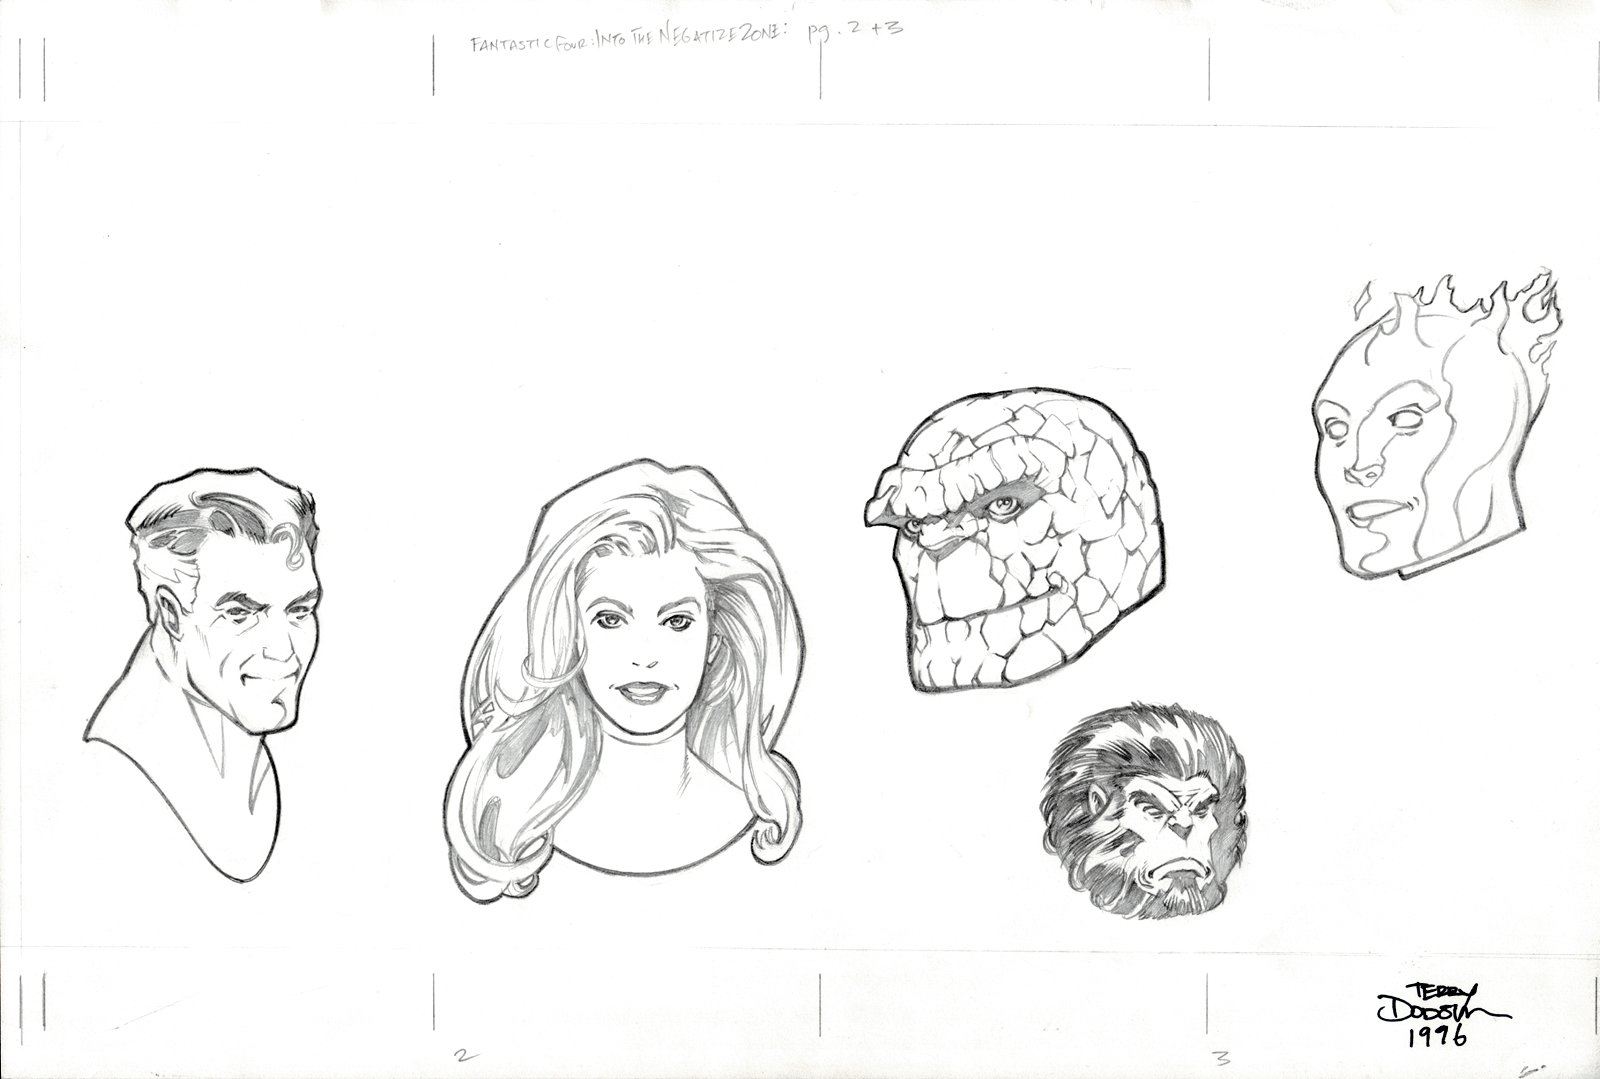 Fantastic Four: Into The Negative Zone p 2-3 (ENTIRE TEAM PINUP & BLASTAAR!) 1996